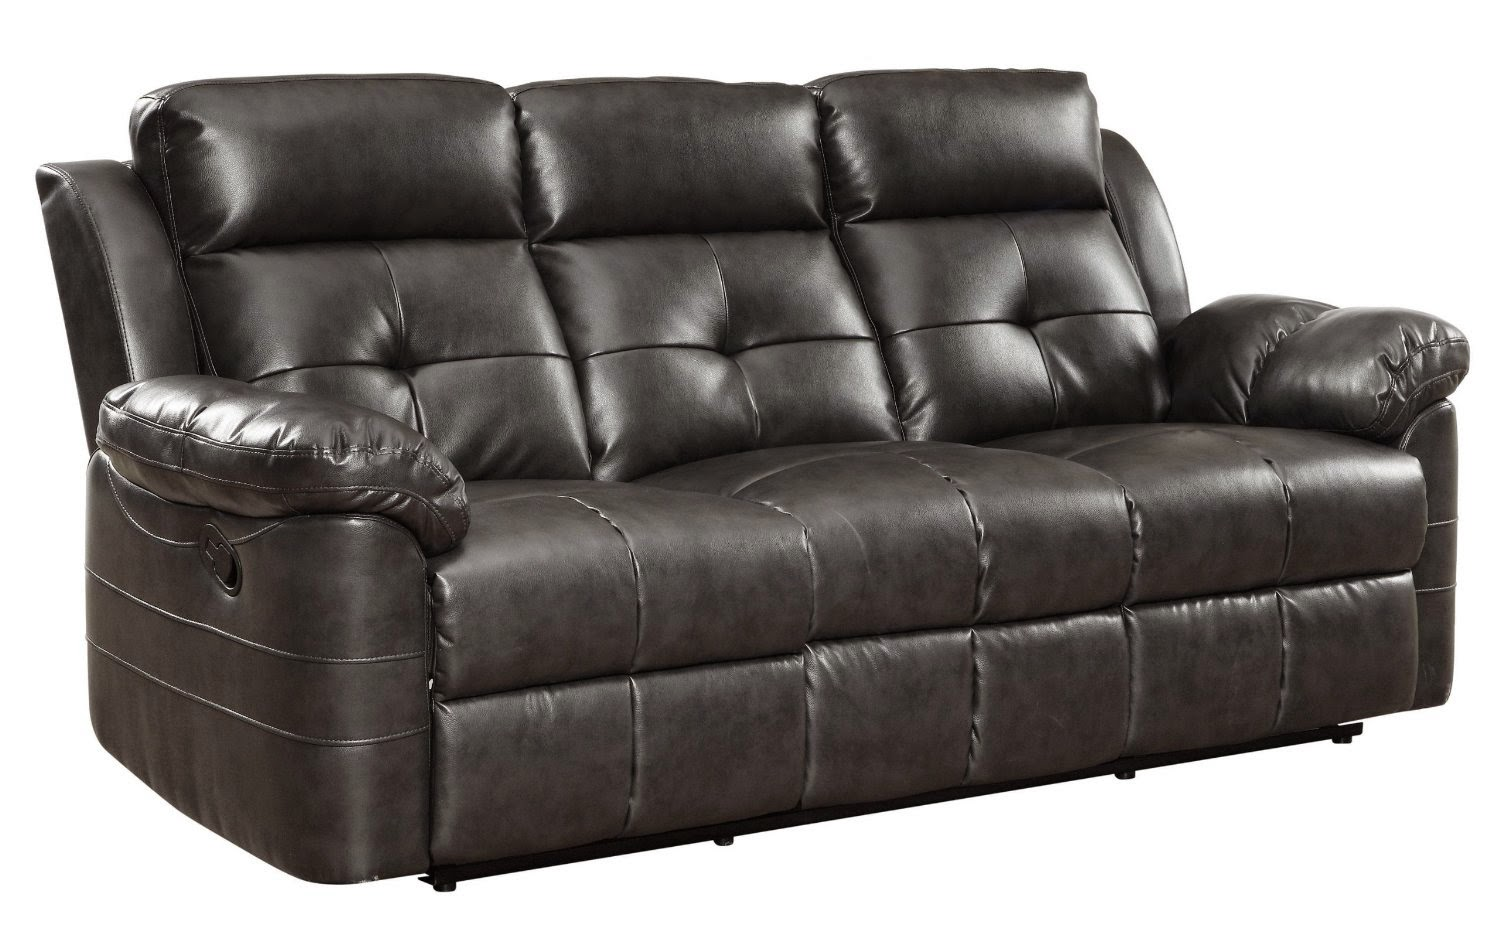 the best reclining sofas ratings reviews curved leather reclining sofa set. Black Bedroom Furniture Sets. Home Design Ideas